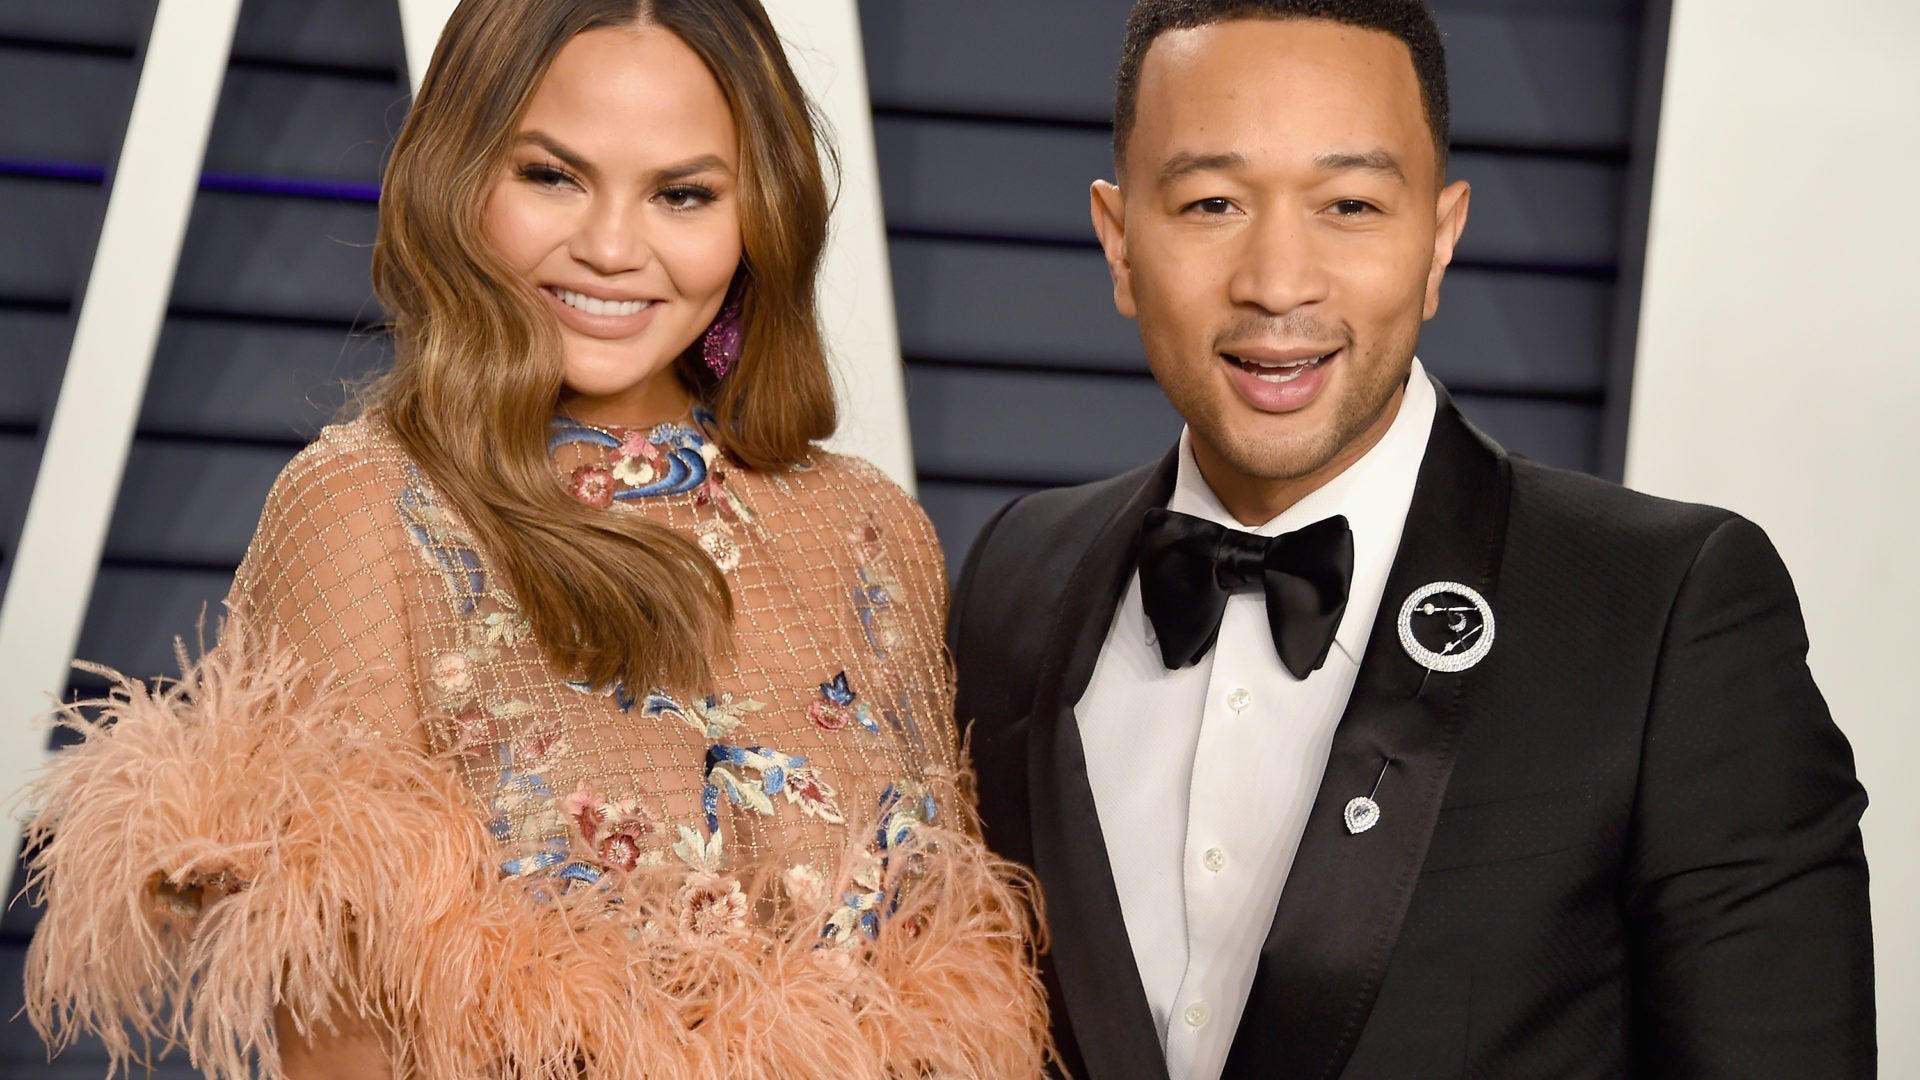 Chrissy Teigen Reacts To John Legend Being Named People's 'Sexiest Man Alive'